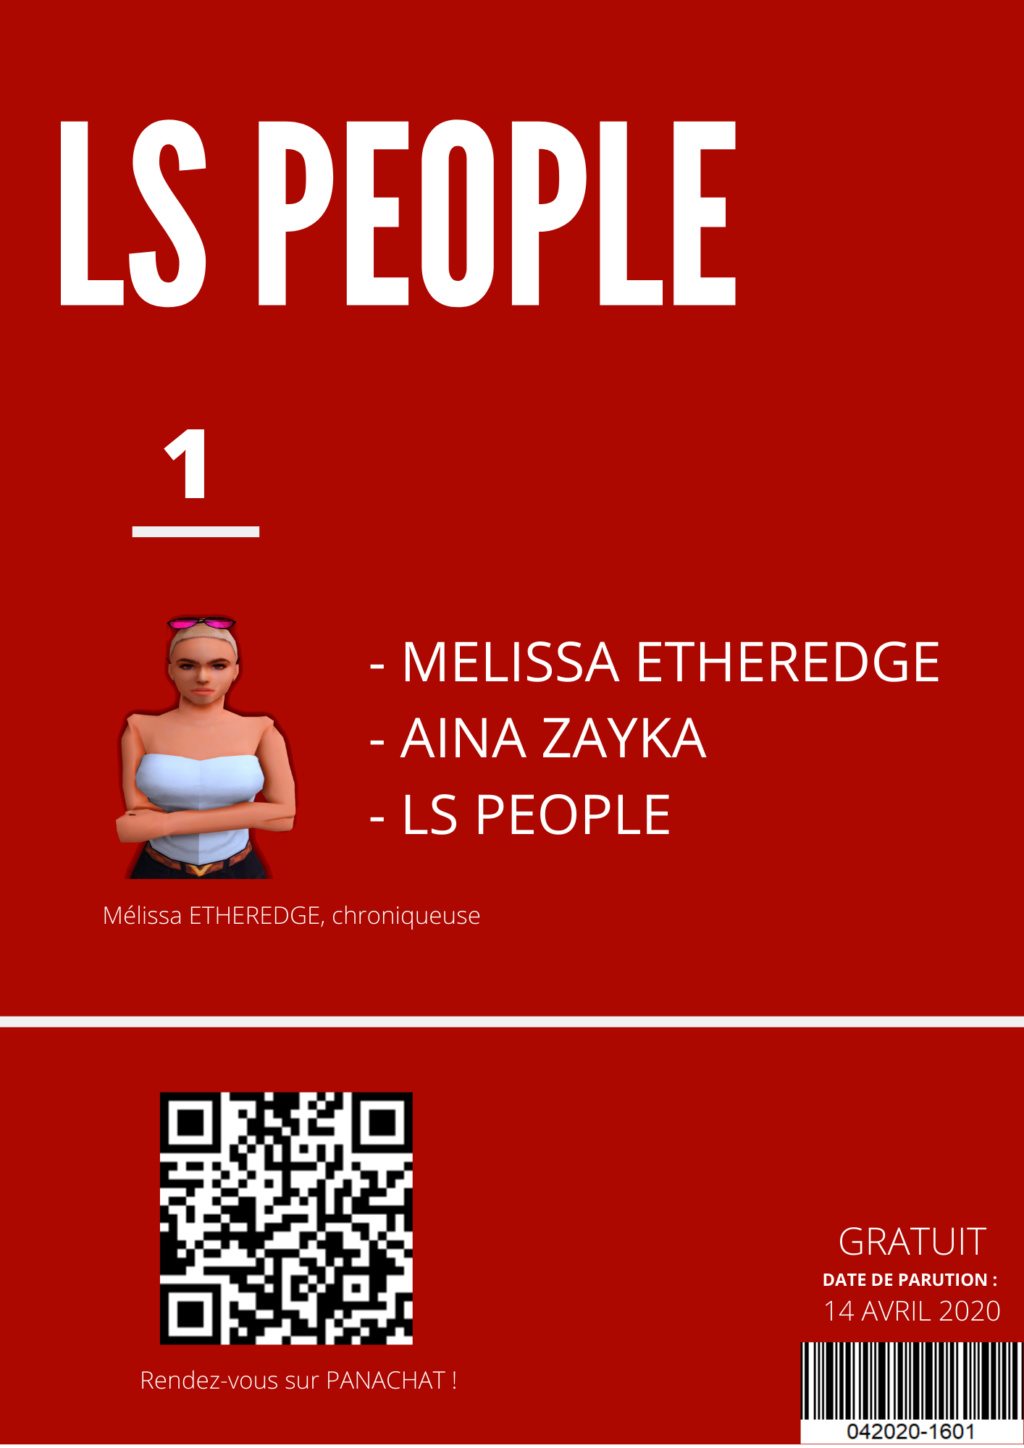 Magazine LS PEOPLE - 14 AVRIL 2020  510